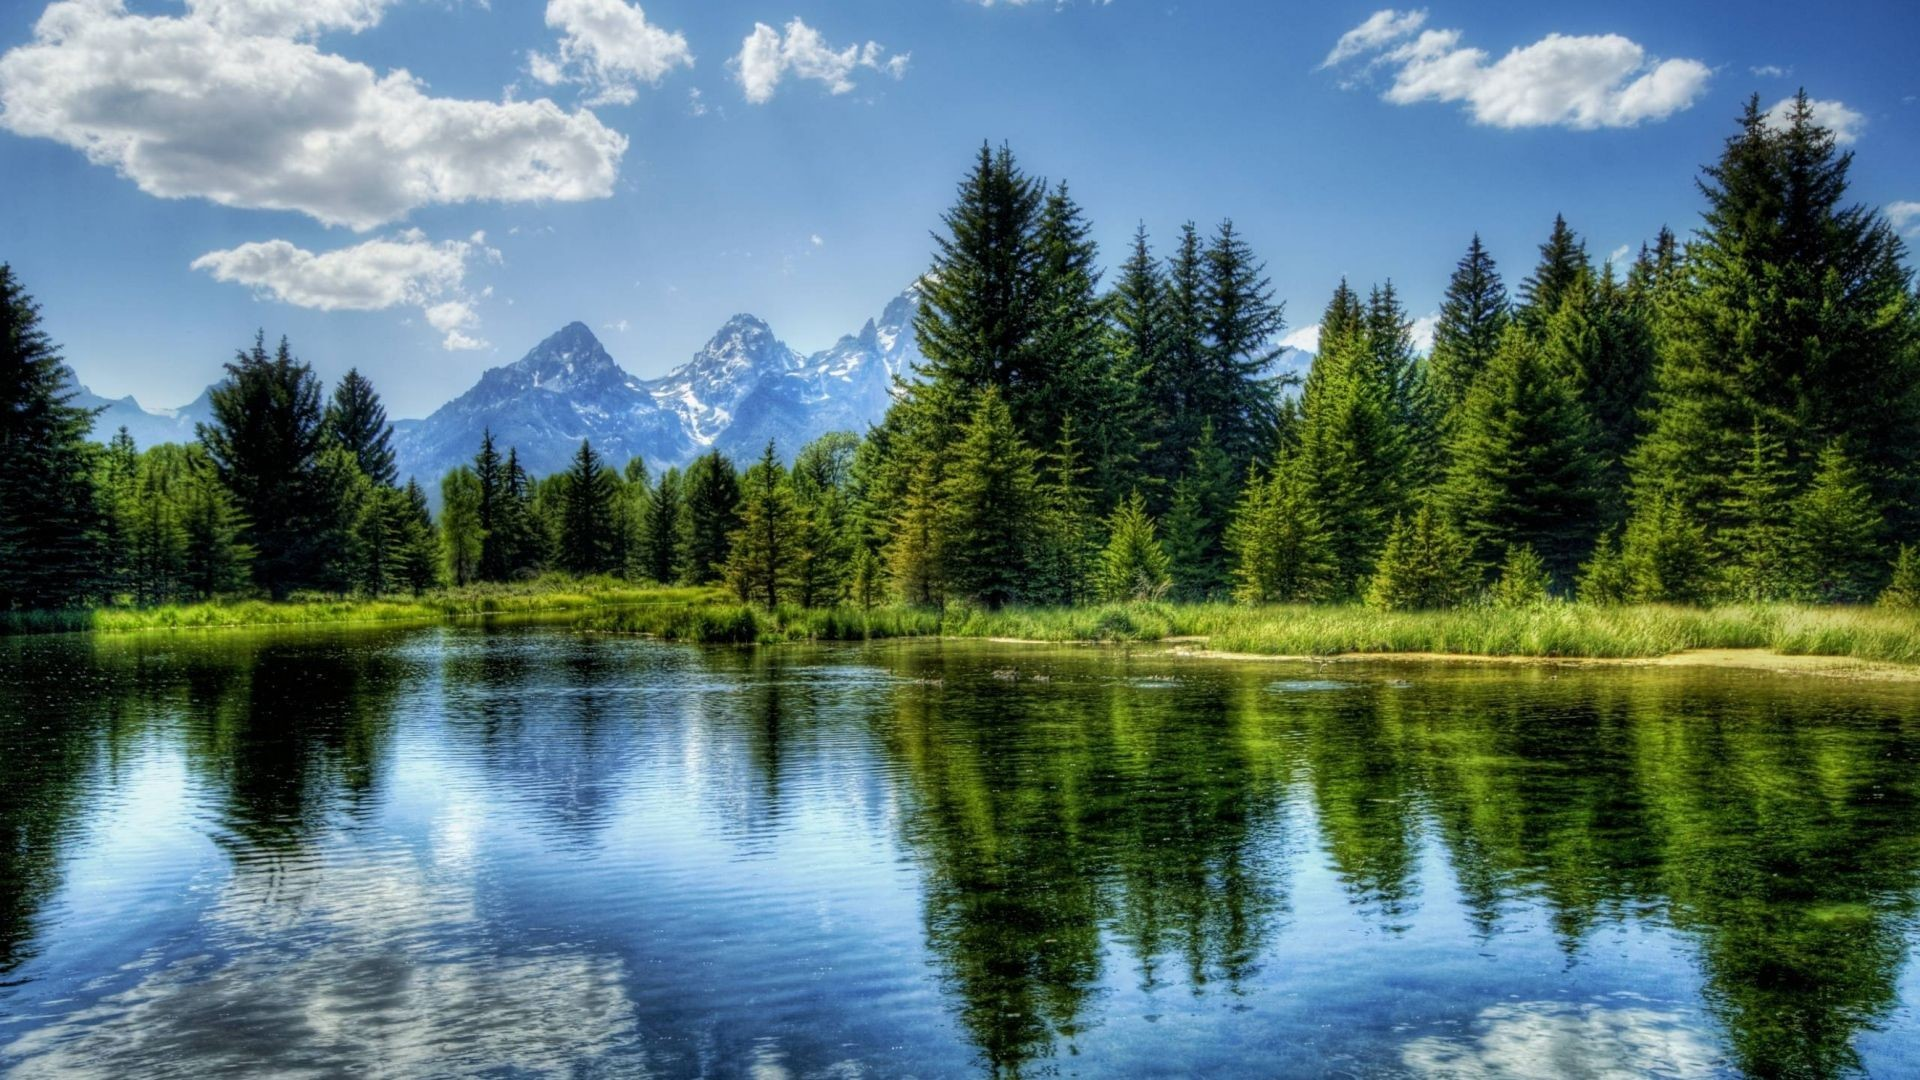 HD Wallpapers 1080p Landscape Archives – HD Widescreen Wallpapers